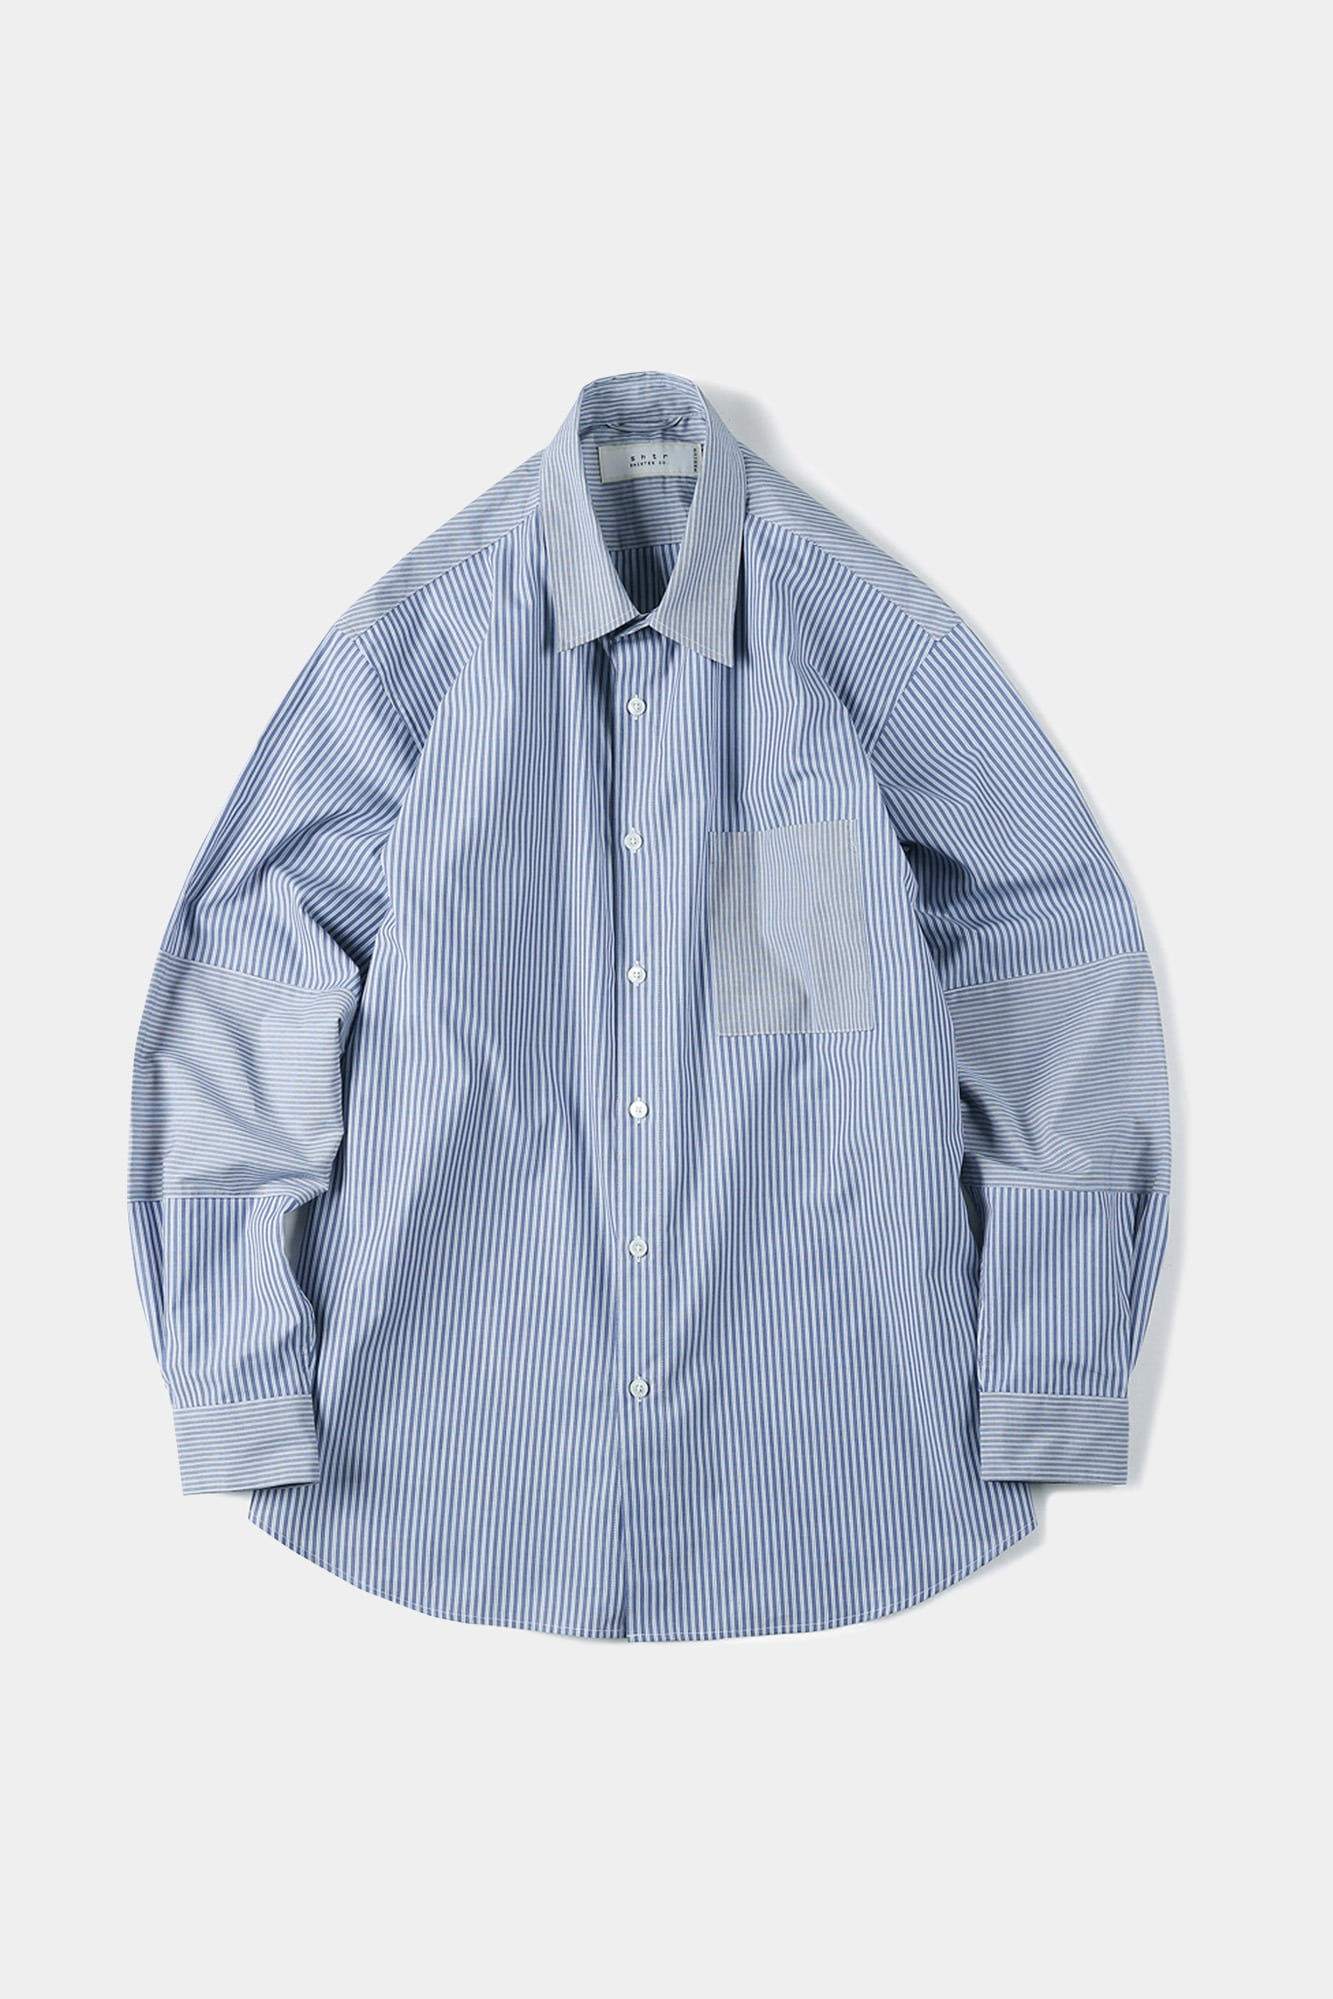 "SHIRTER Mixed Stripe Shirt ""Blue"""